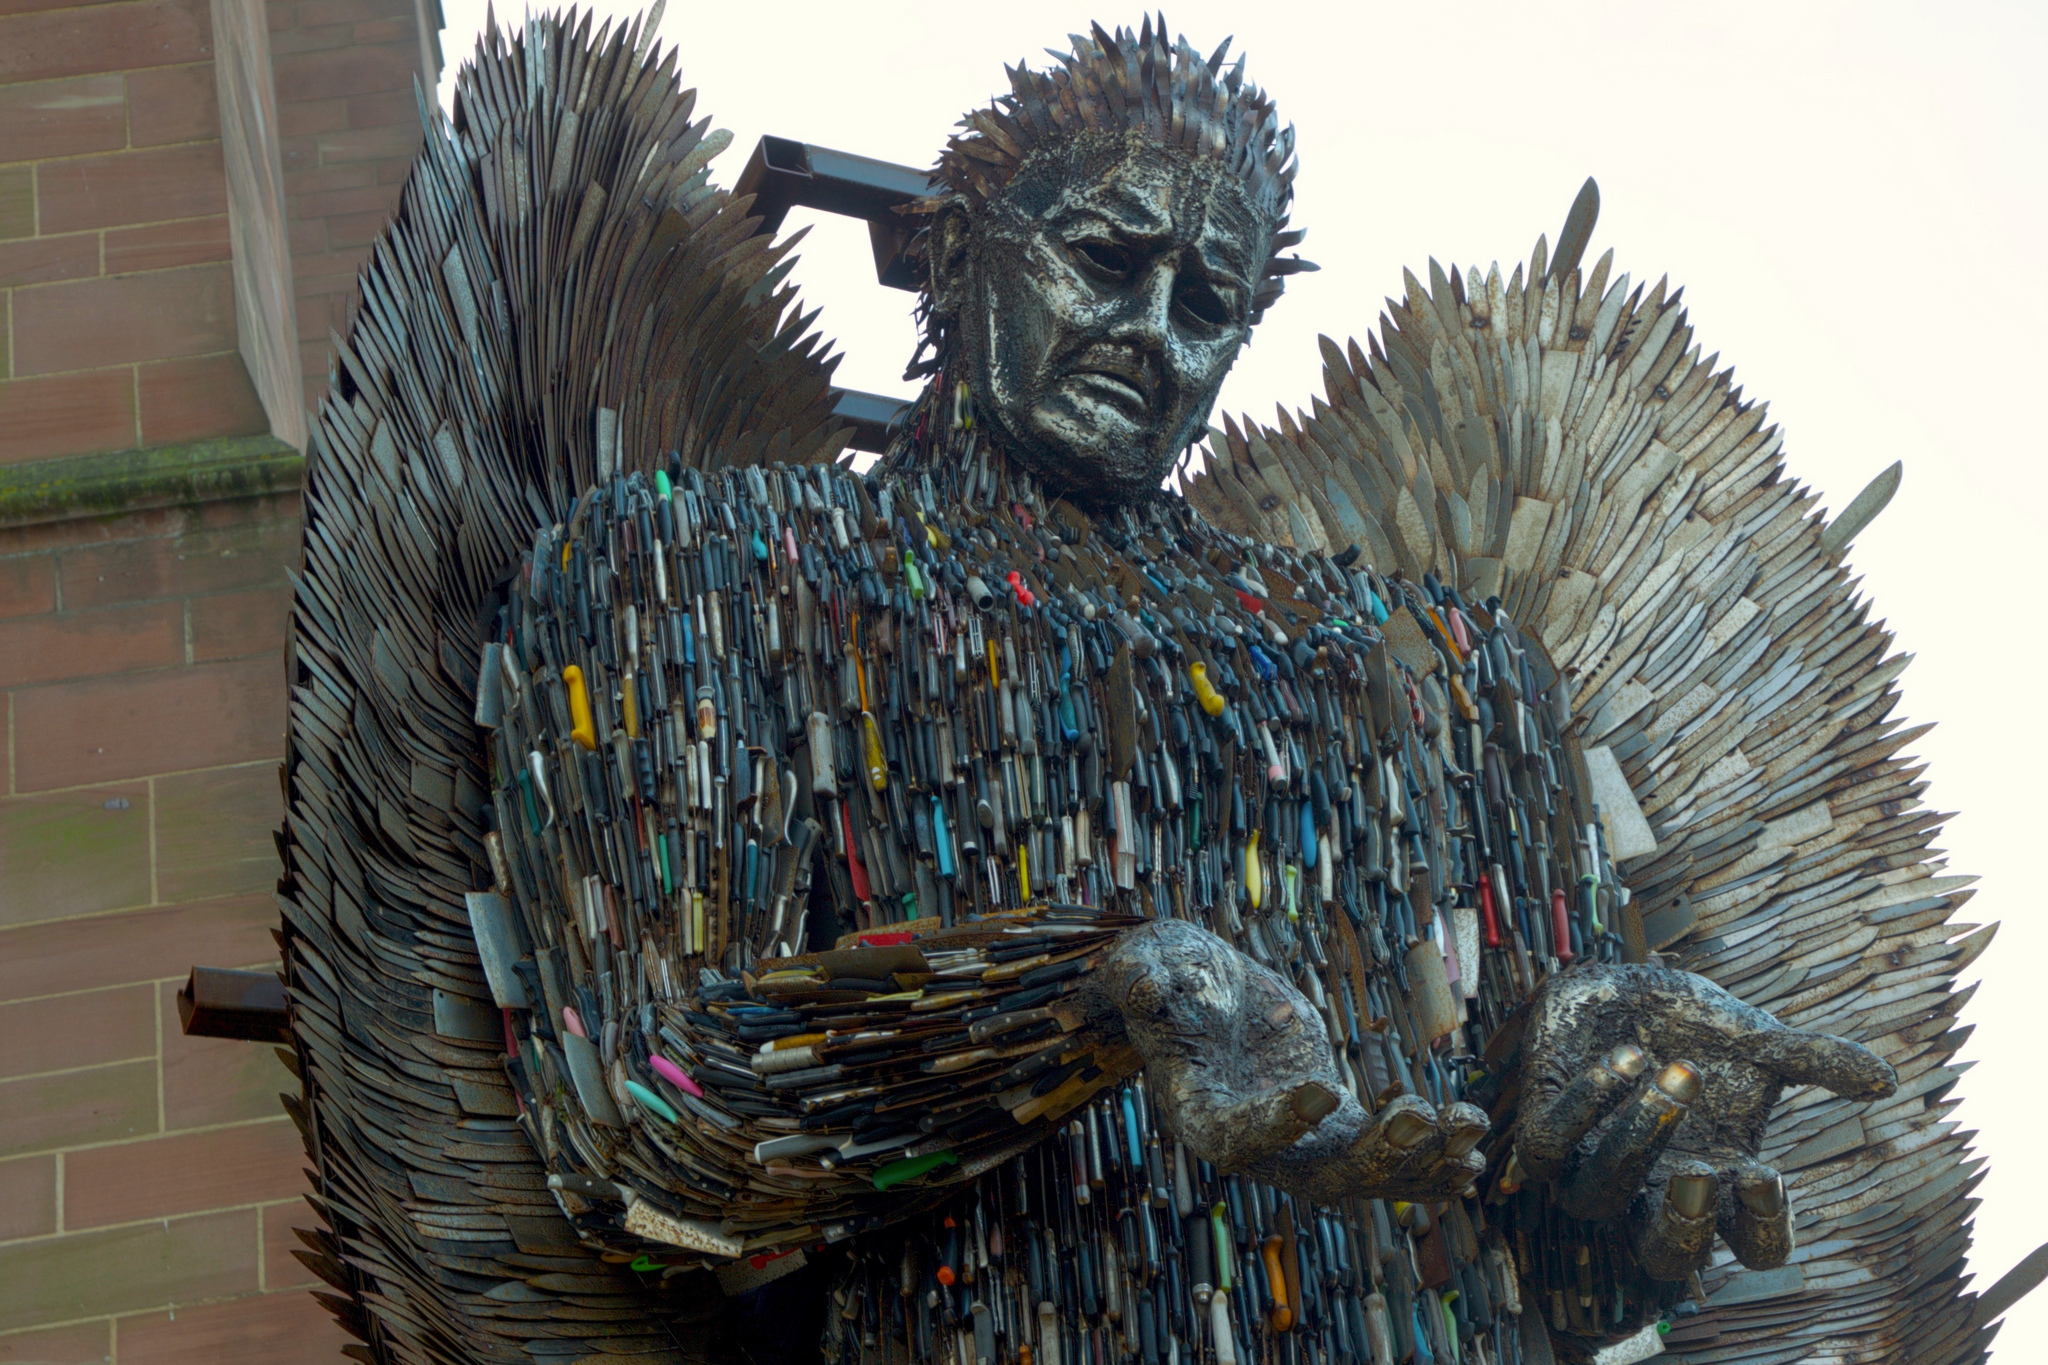 Knife Angel by Terry Kearney (from Flickr). Sculpture by the artist Alfie Bradley